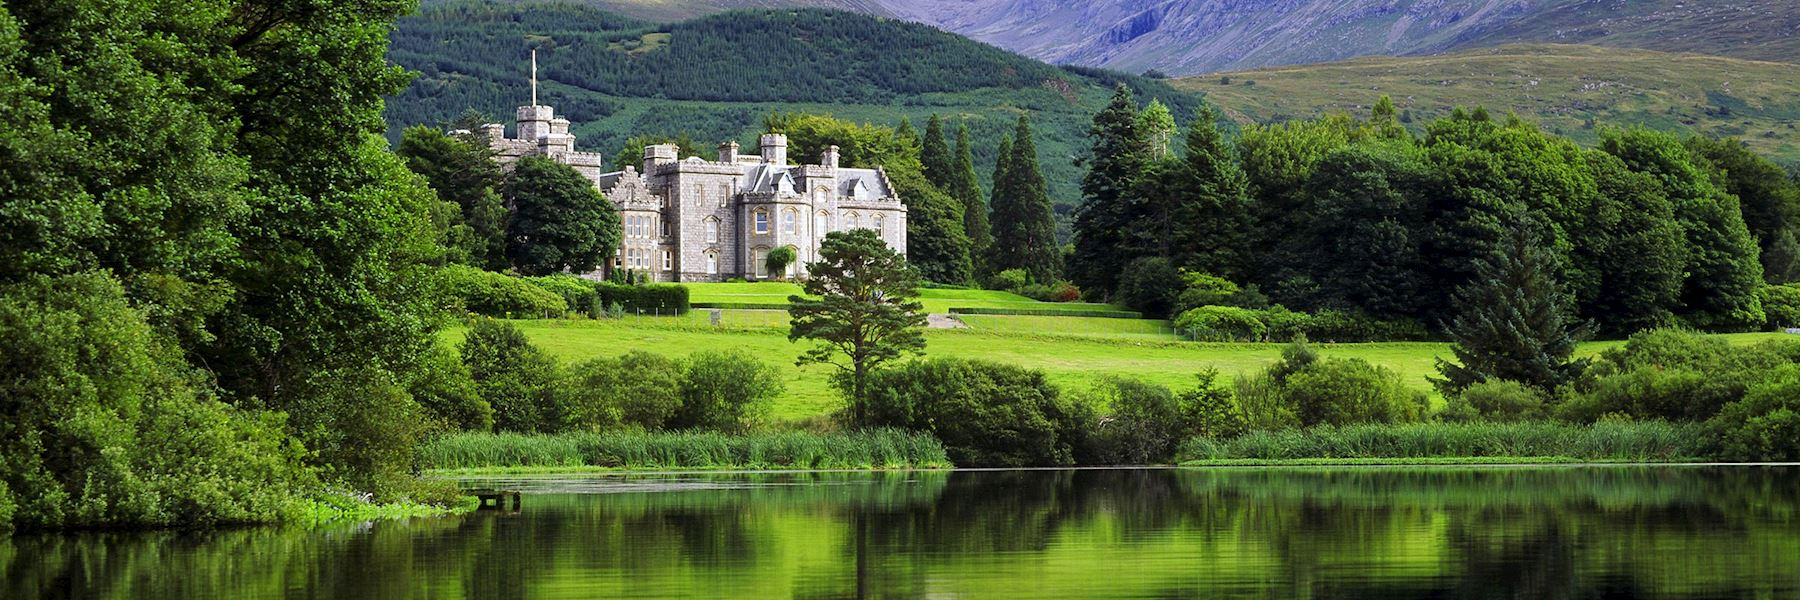 Accommodations in Scotland